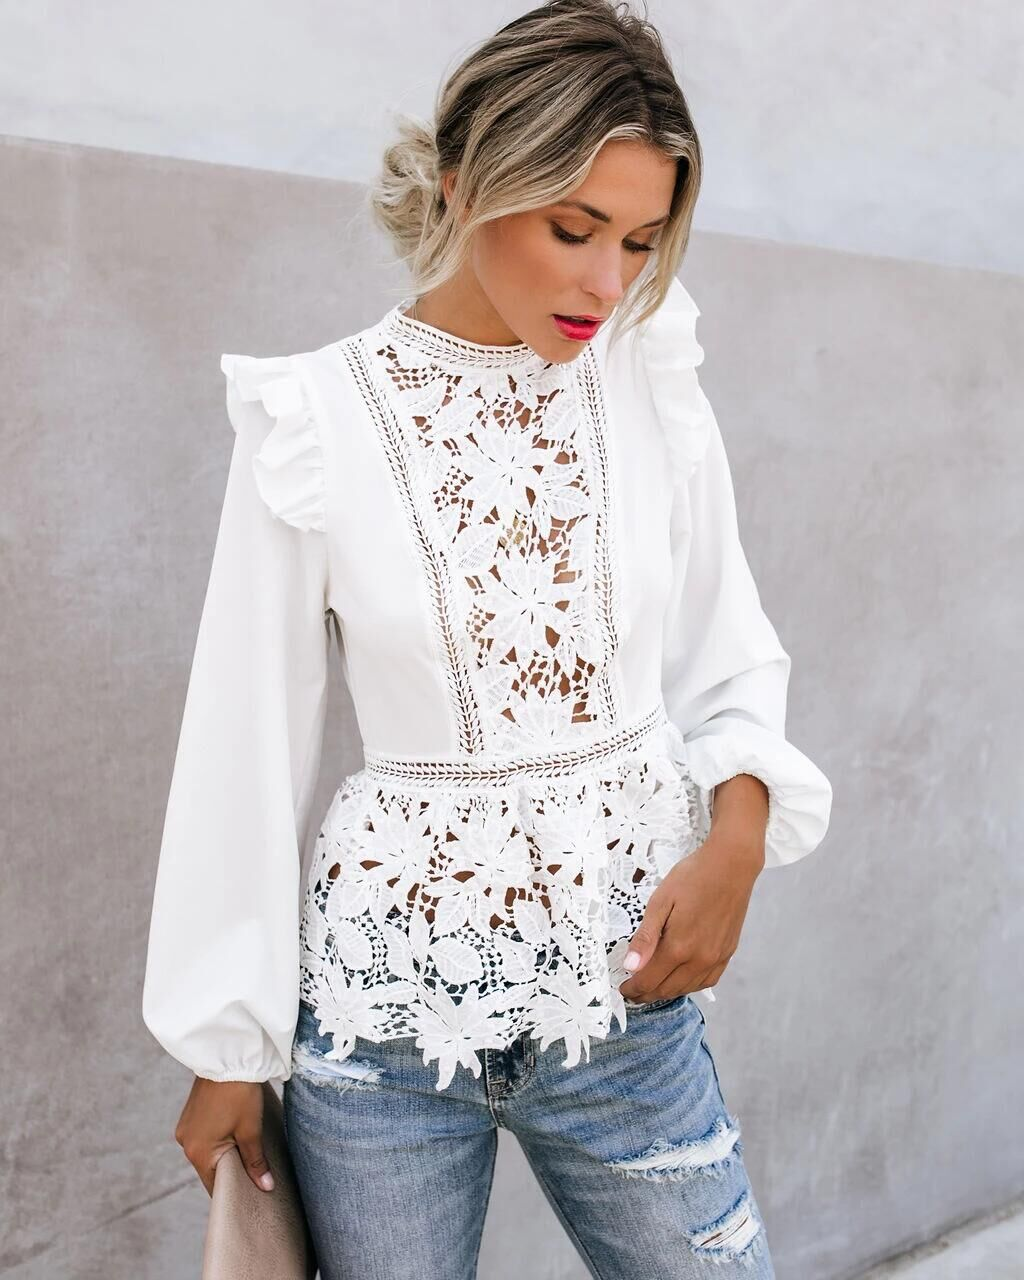 2020 Women Floral Lace Blouses Boho Long Sleeve White Tops Ladies Hollow Out Shirts Autumn Spring Elegant Blouse Streetwear S-XL